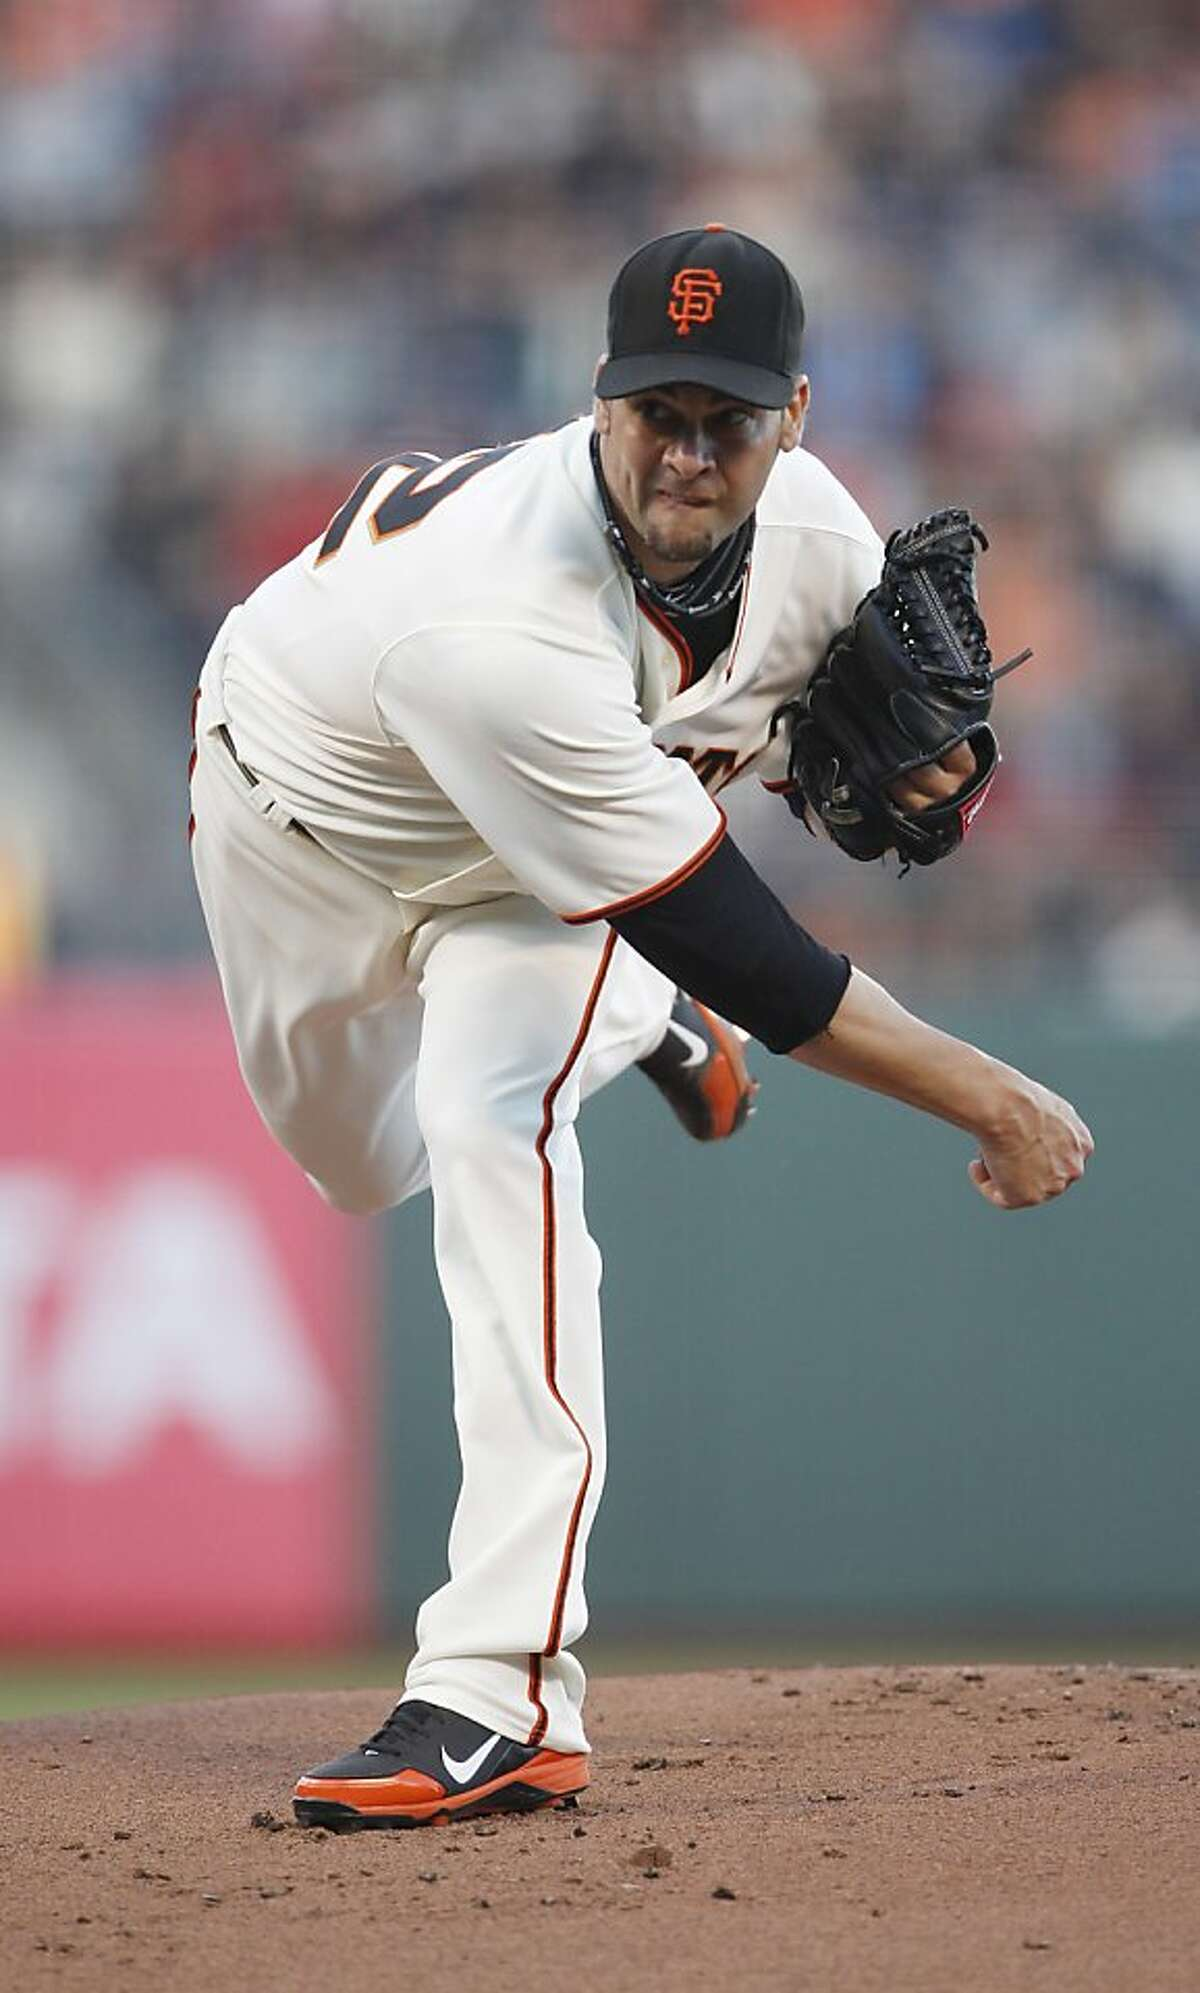 San Francisco Giants starting pitcher Ryan Vogelsong delivers a pitch during the first inning of the game against the San Diego Padres on Monday, July 23, 2012 in San Francisco, Calif.